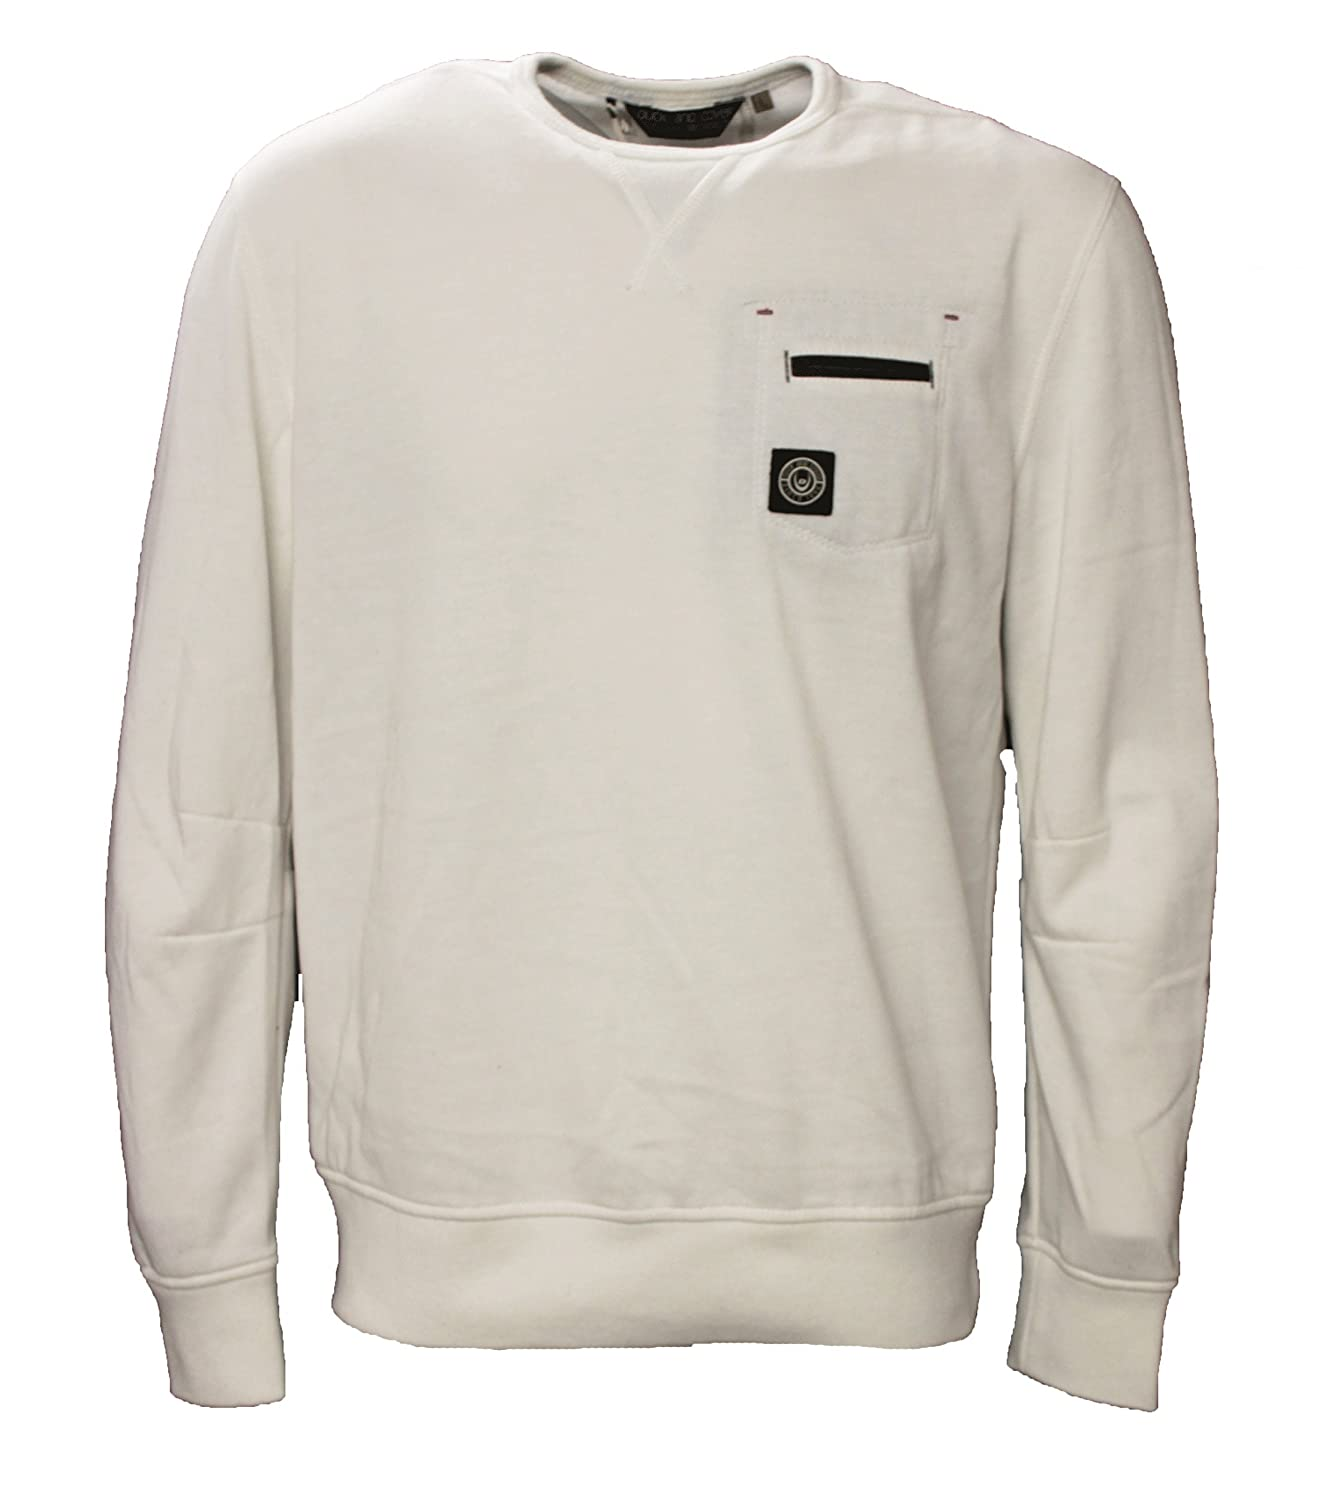 Duck and Cover Speake V2 Crew Neck Jumper Sweatshirt